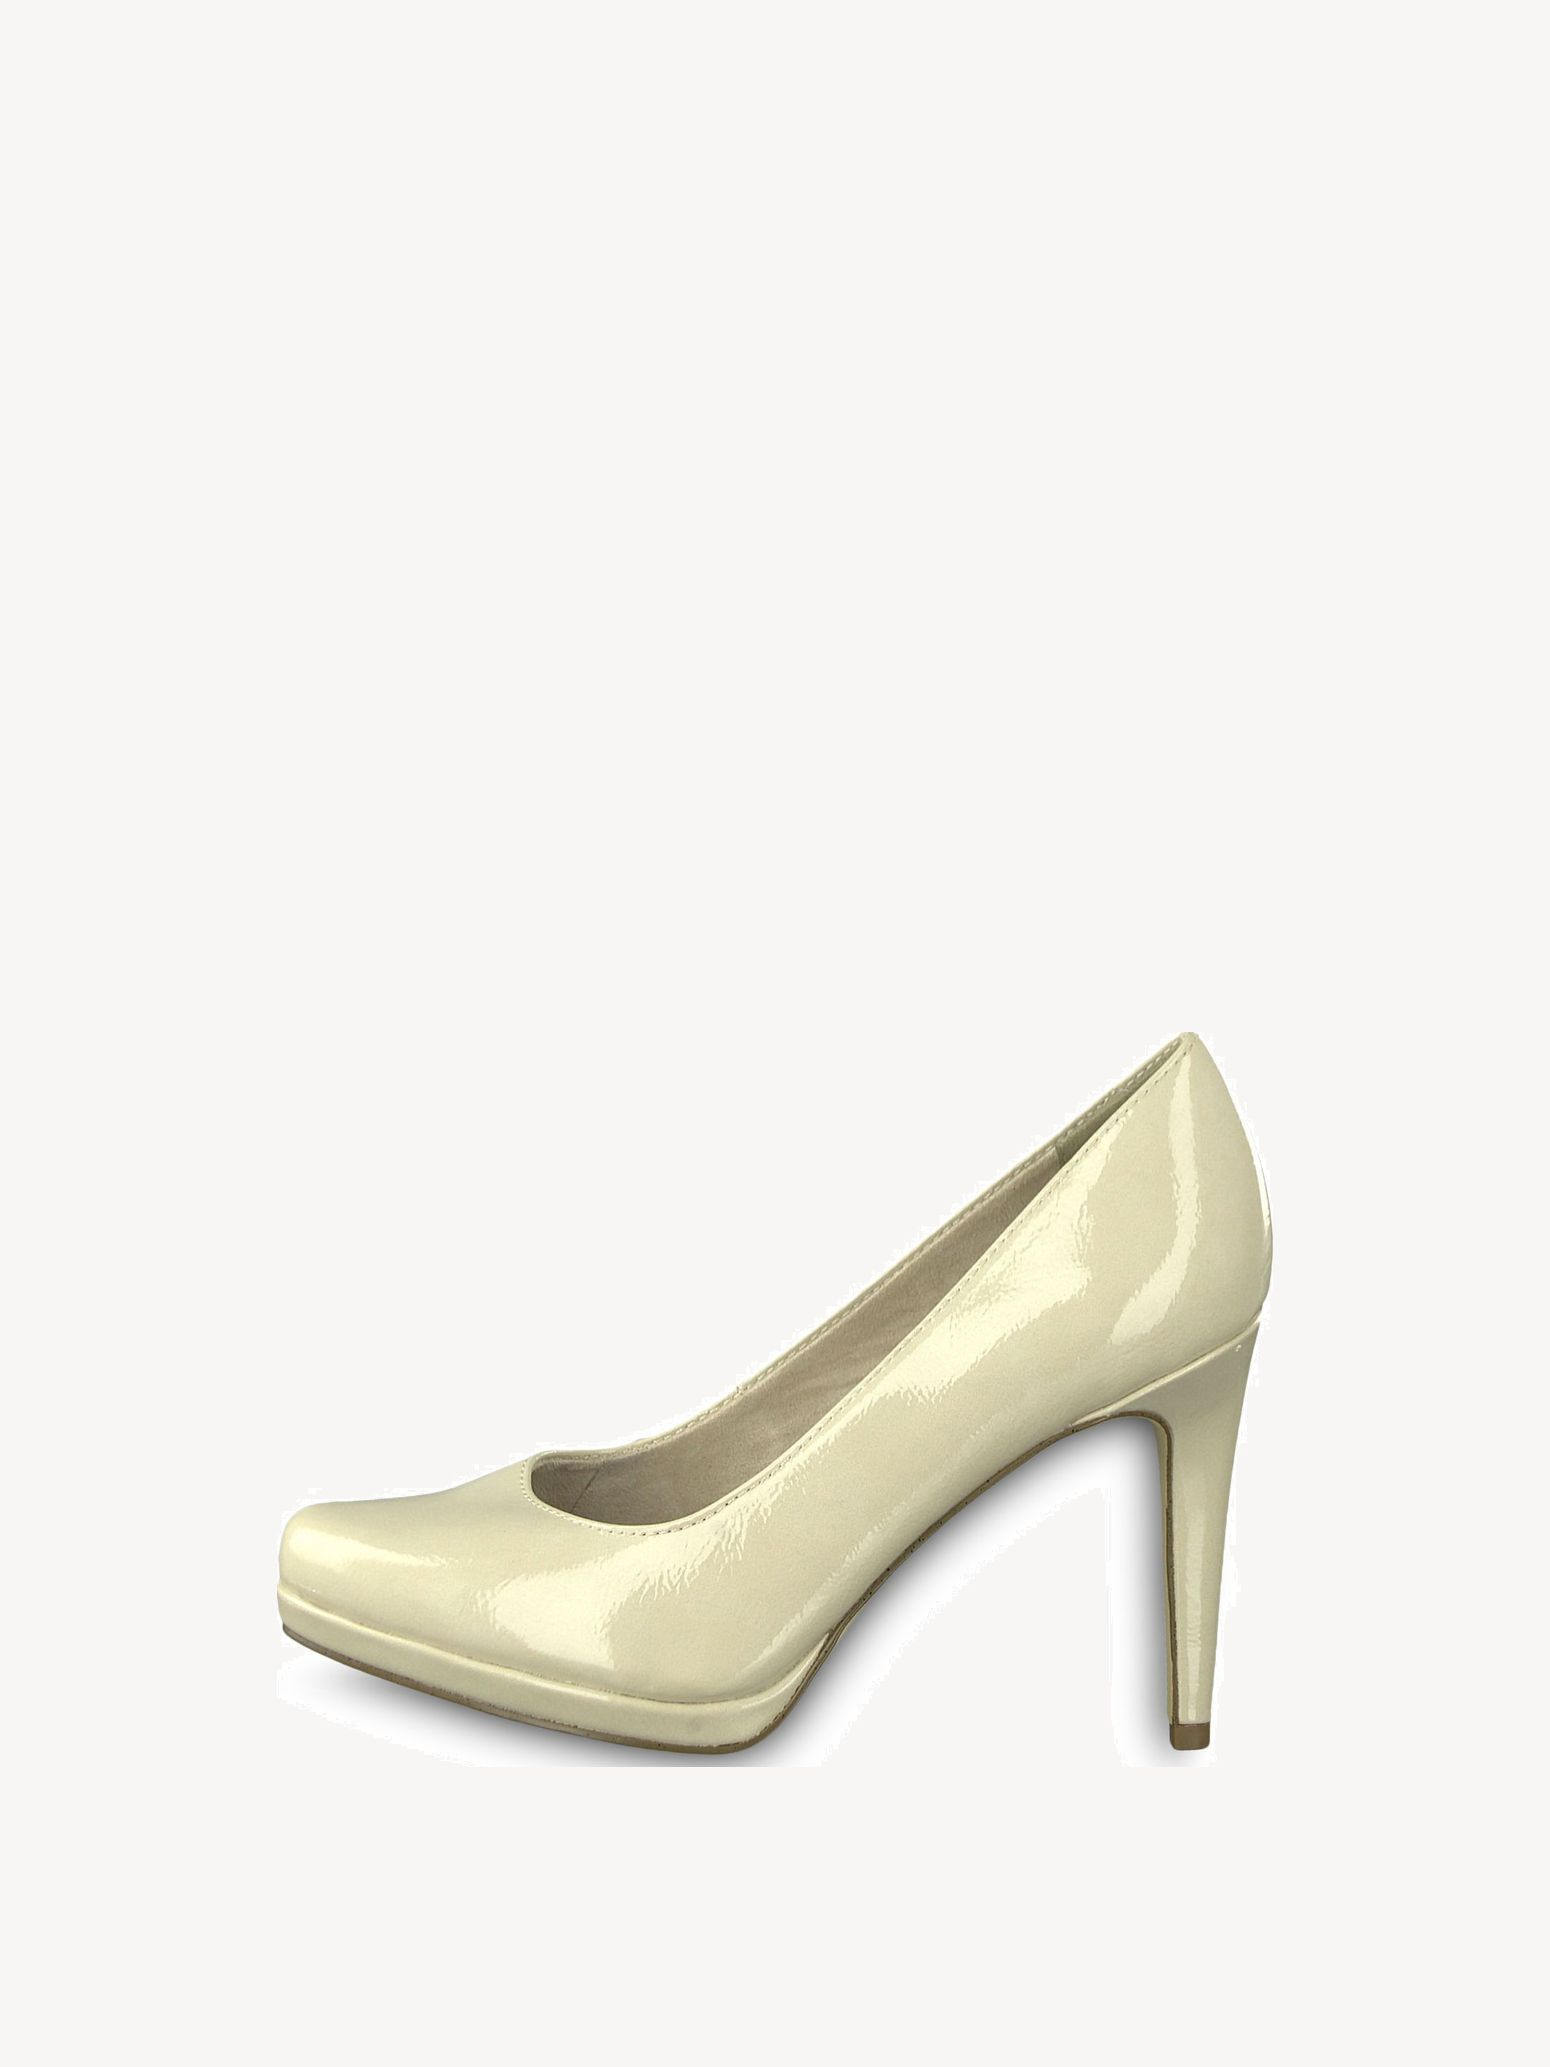 Heel Tamaris Heel Tamaris Creme High High Pumps lJTcFK1